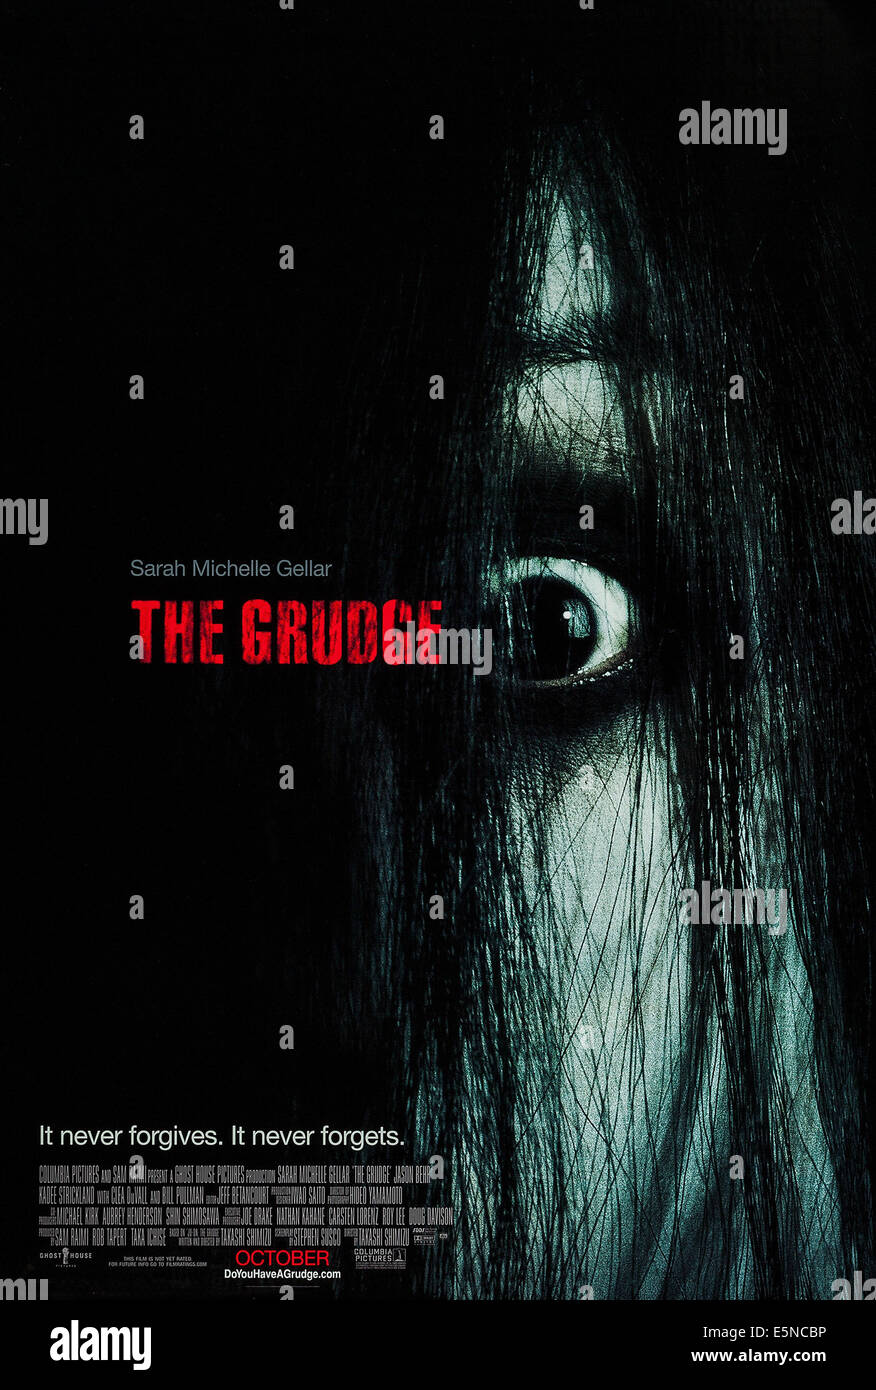 THE GRUDGE, US advance poster art, 2004, © Columbia/courtesy Everett Collection - Stock Image